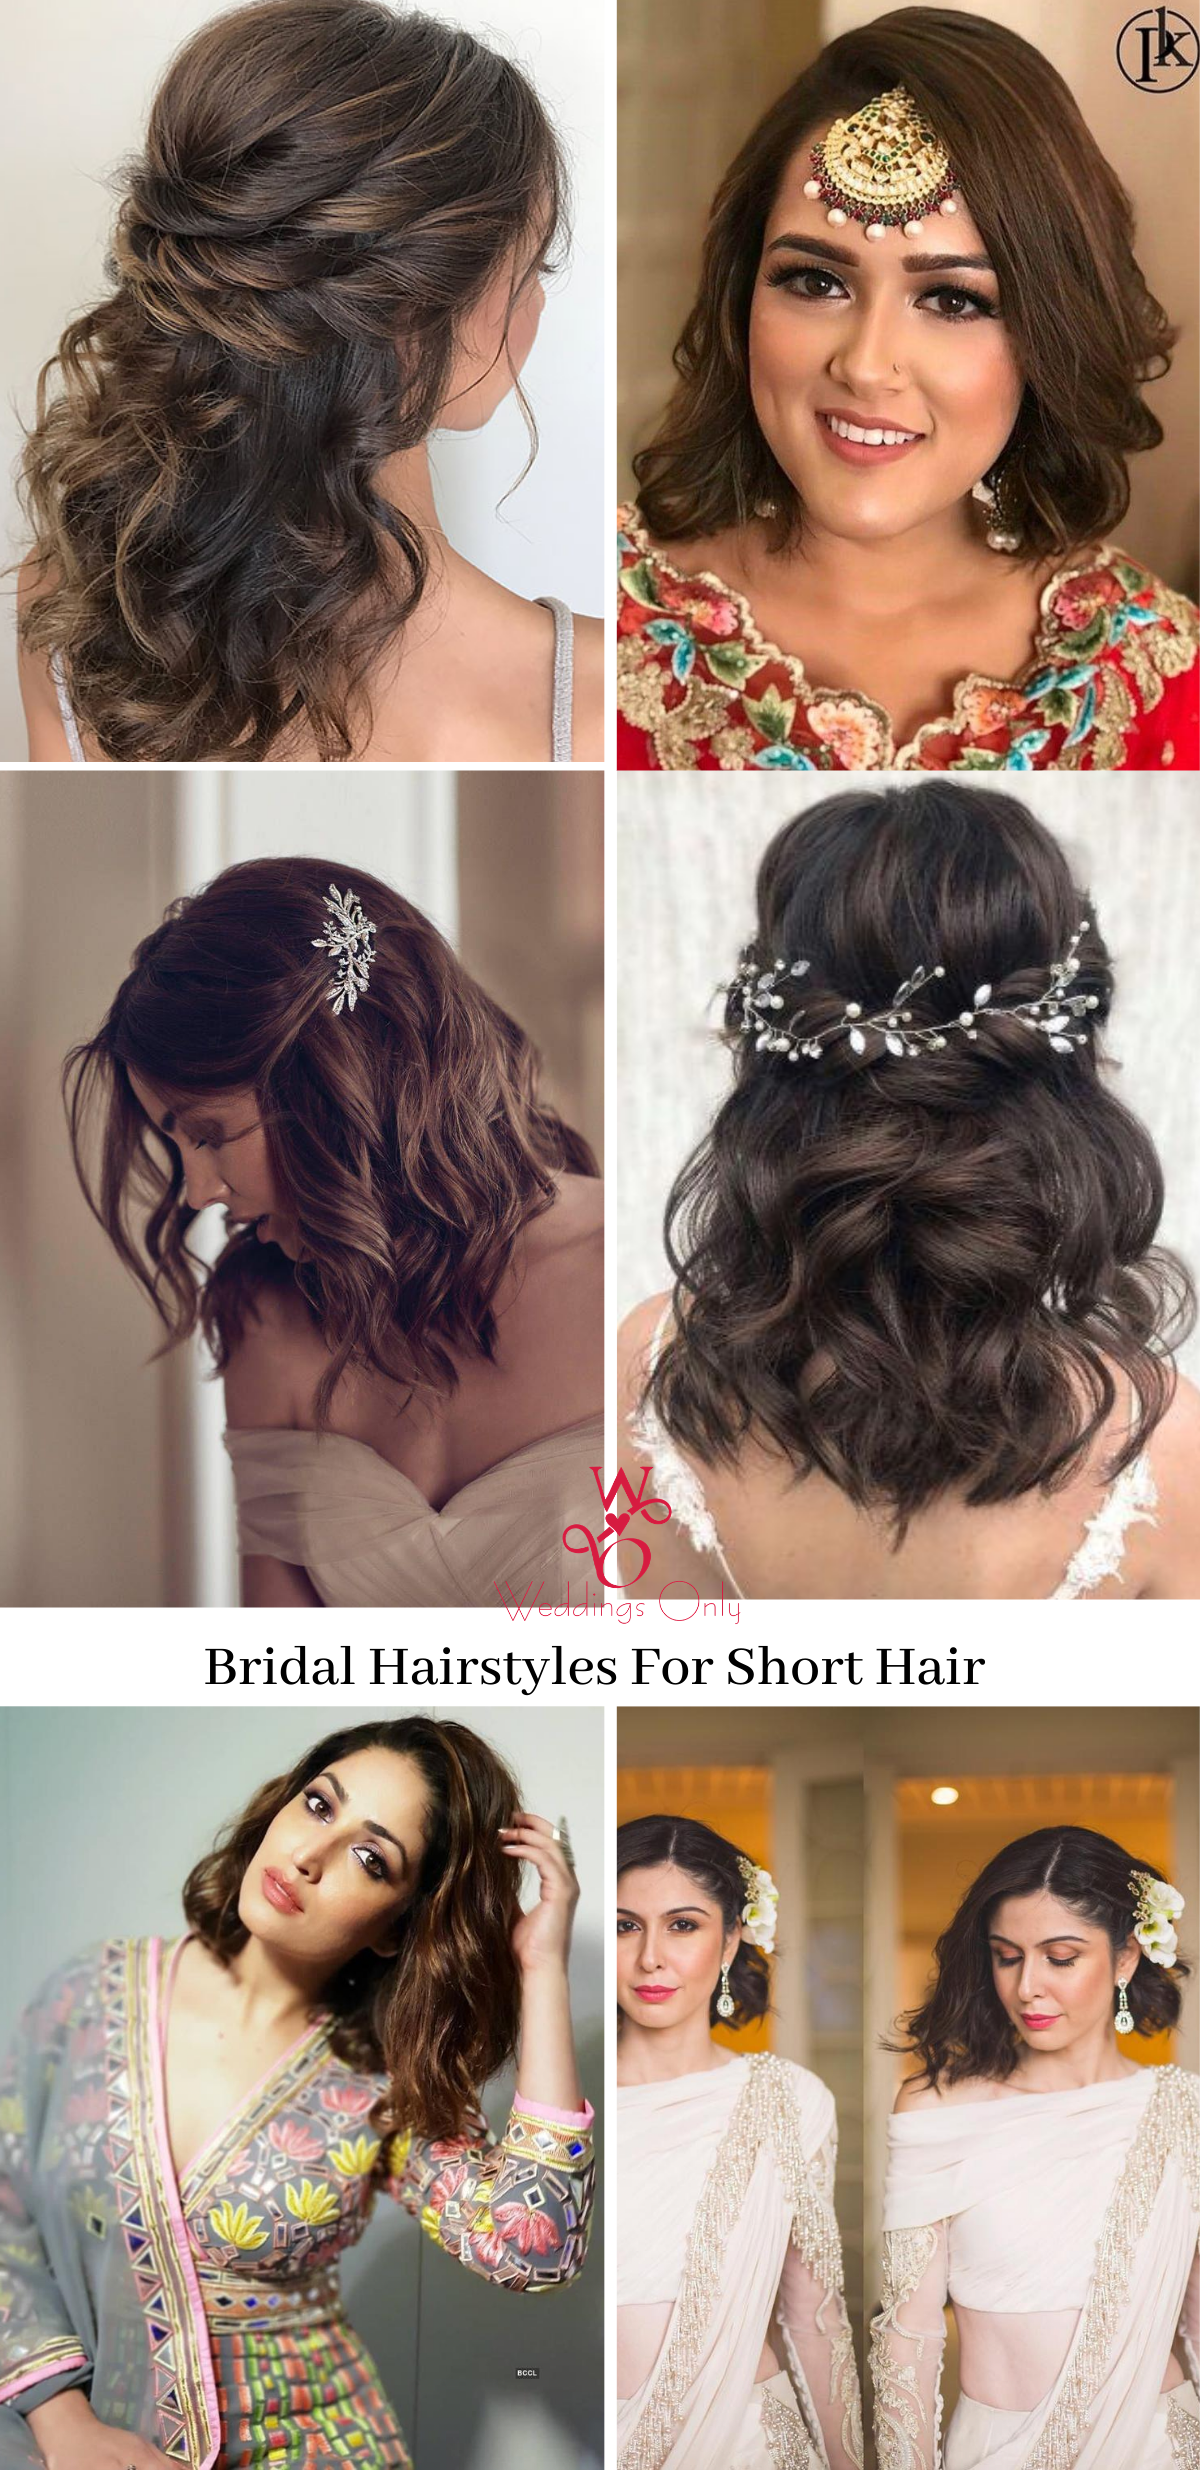 Trending Bridal Hairstyle For Short Hair Bridal Hairstyle Bridal Inspiration Indian Wedding In 2020 Short Wedding Hair Short Hair Outfits Hair Styles